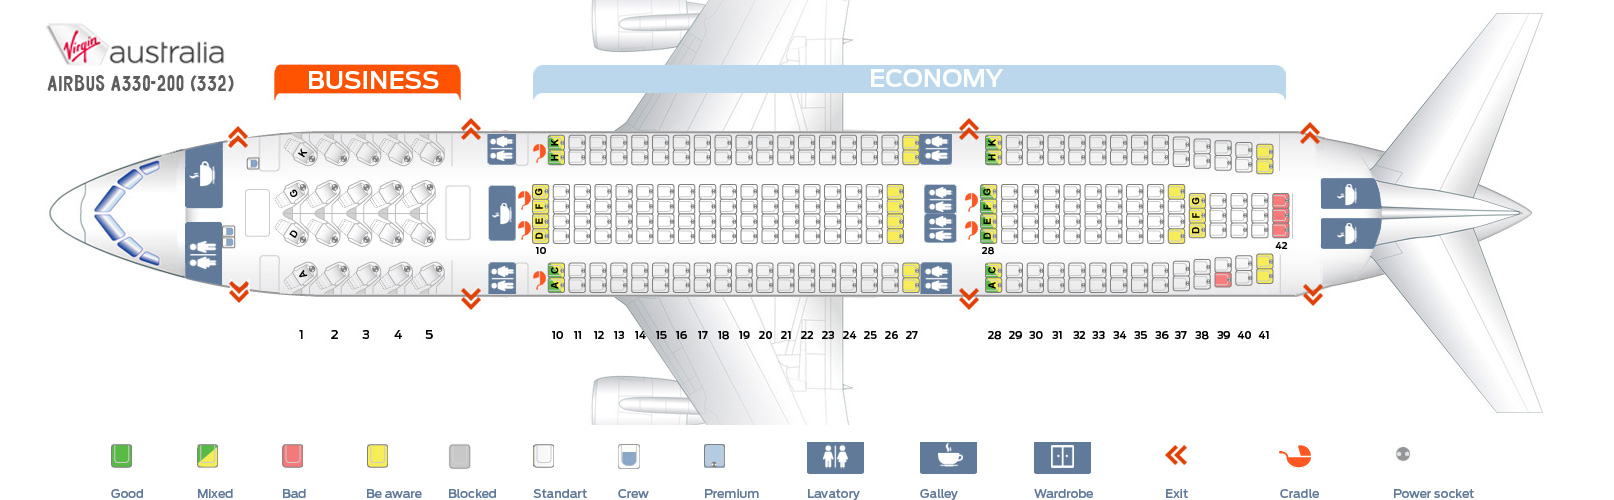 etihad plane economy cl with Aircraft Airbus A330 200 Seating on Aircraft Airbus A330 200 Seating also Emirates A380 Economy Class Seats furthermore Aircraft Airbus A330 200 Seating in addition Collectionqdwn Qantas A380 Economy Class moreover Premium Economy.